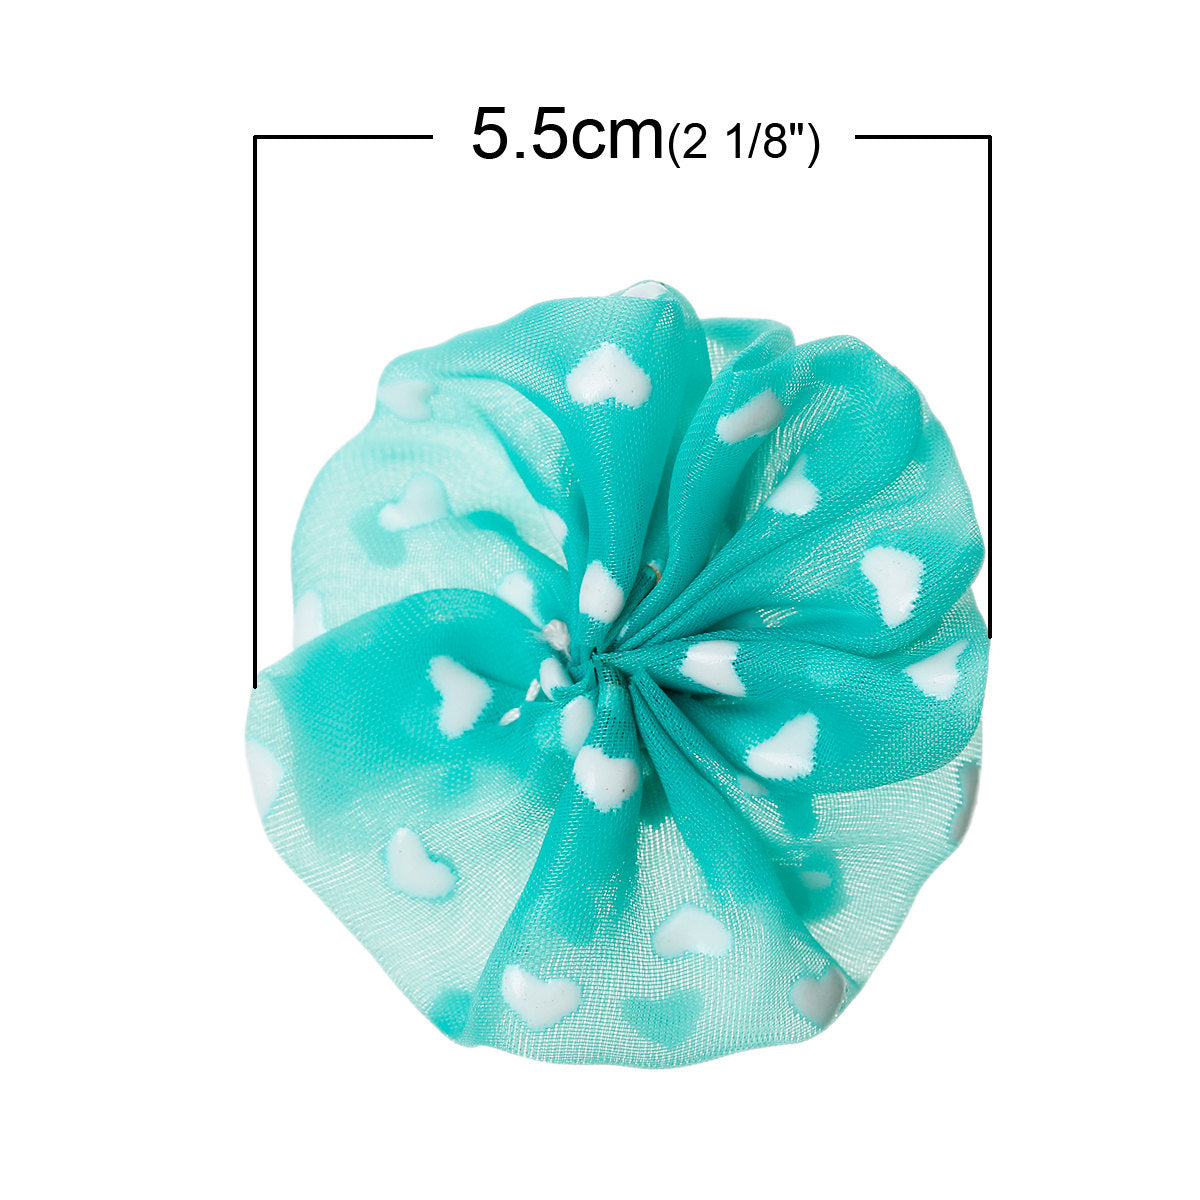 "2"" Blue Ballerina Flower - Hearts - Unfinished DIY - Chiffon Fabric Flowers - Blue DIY Baby Headbands Wholesale Craft supplies"